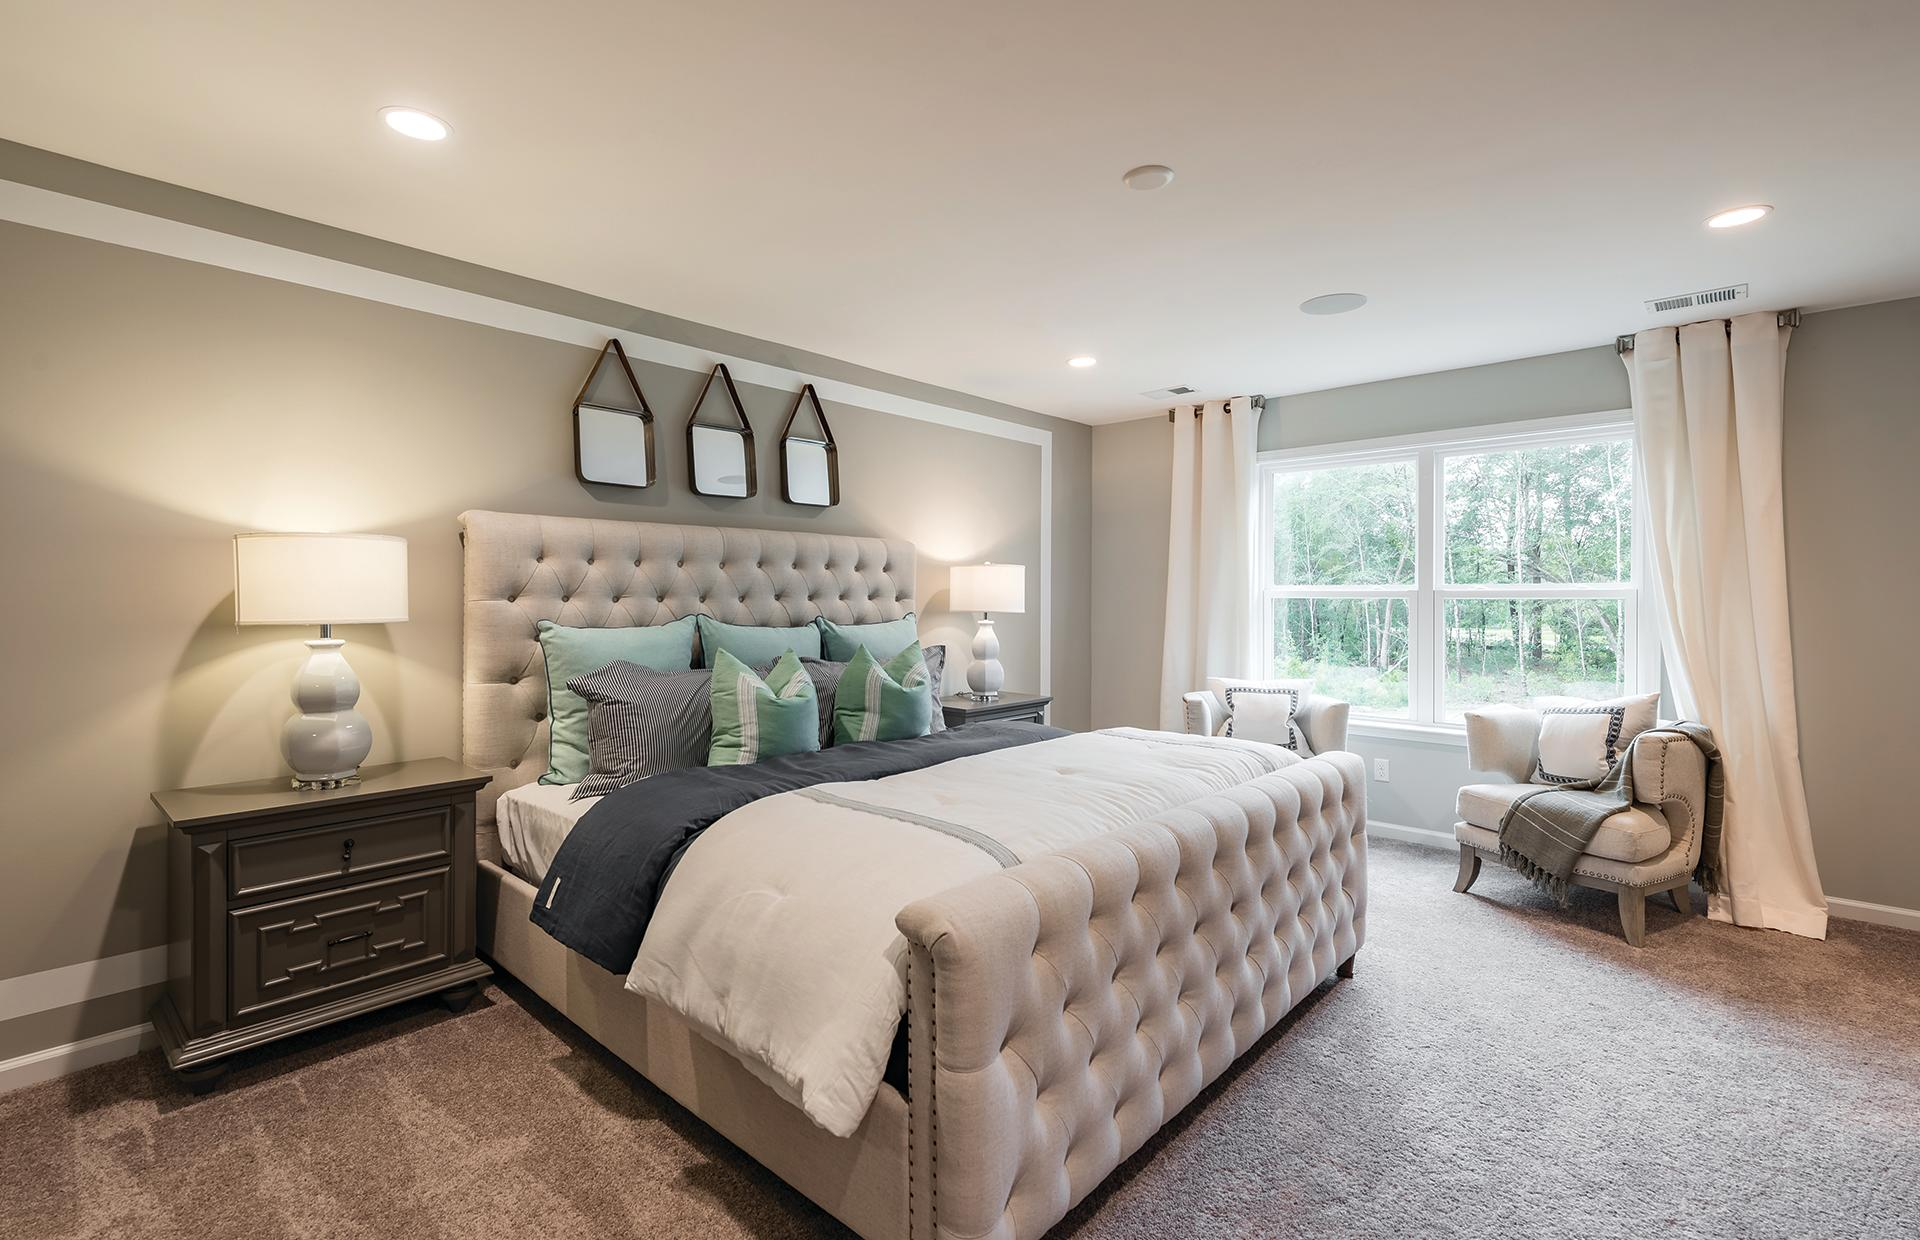 Sanctuary Cove at Cane Bay by Centex Homes image 1